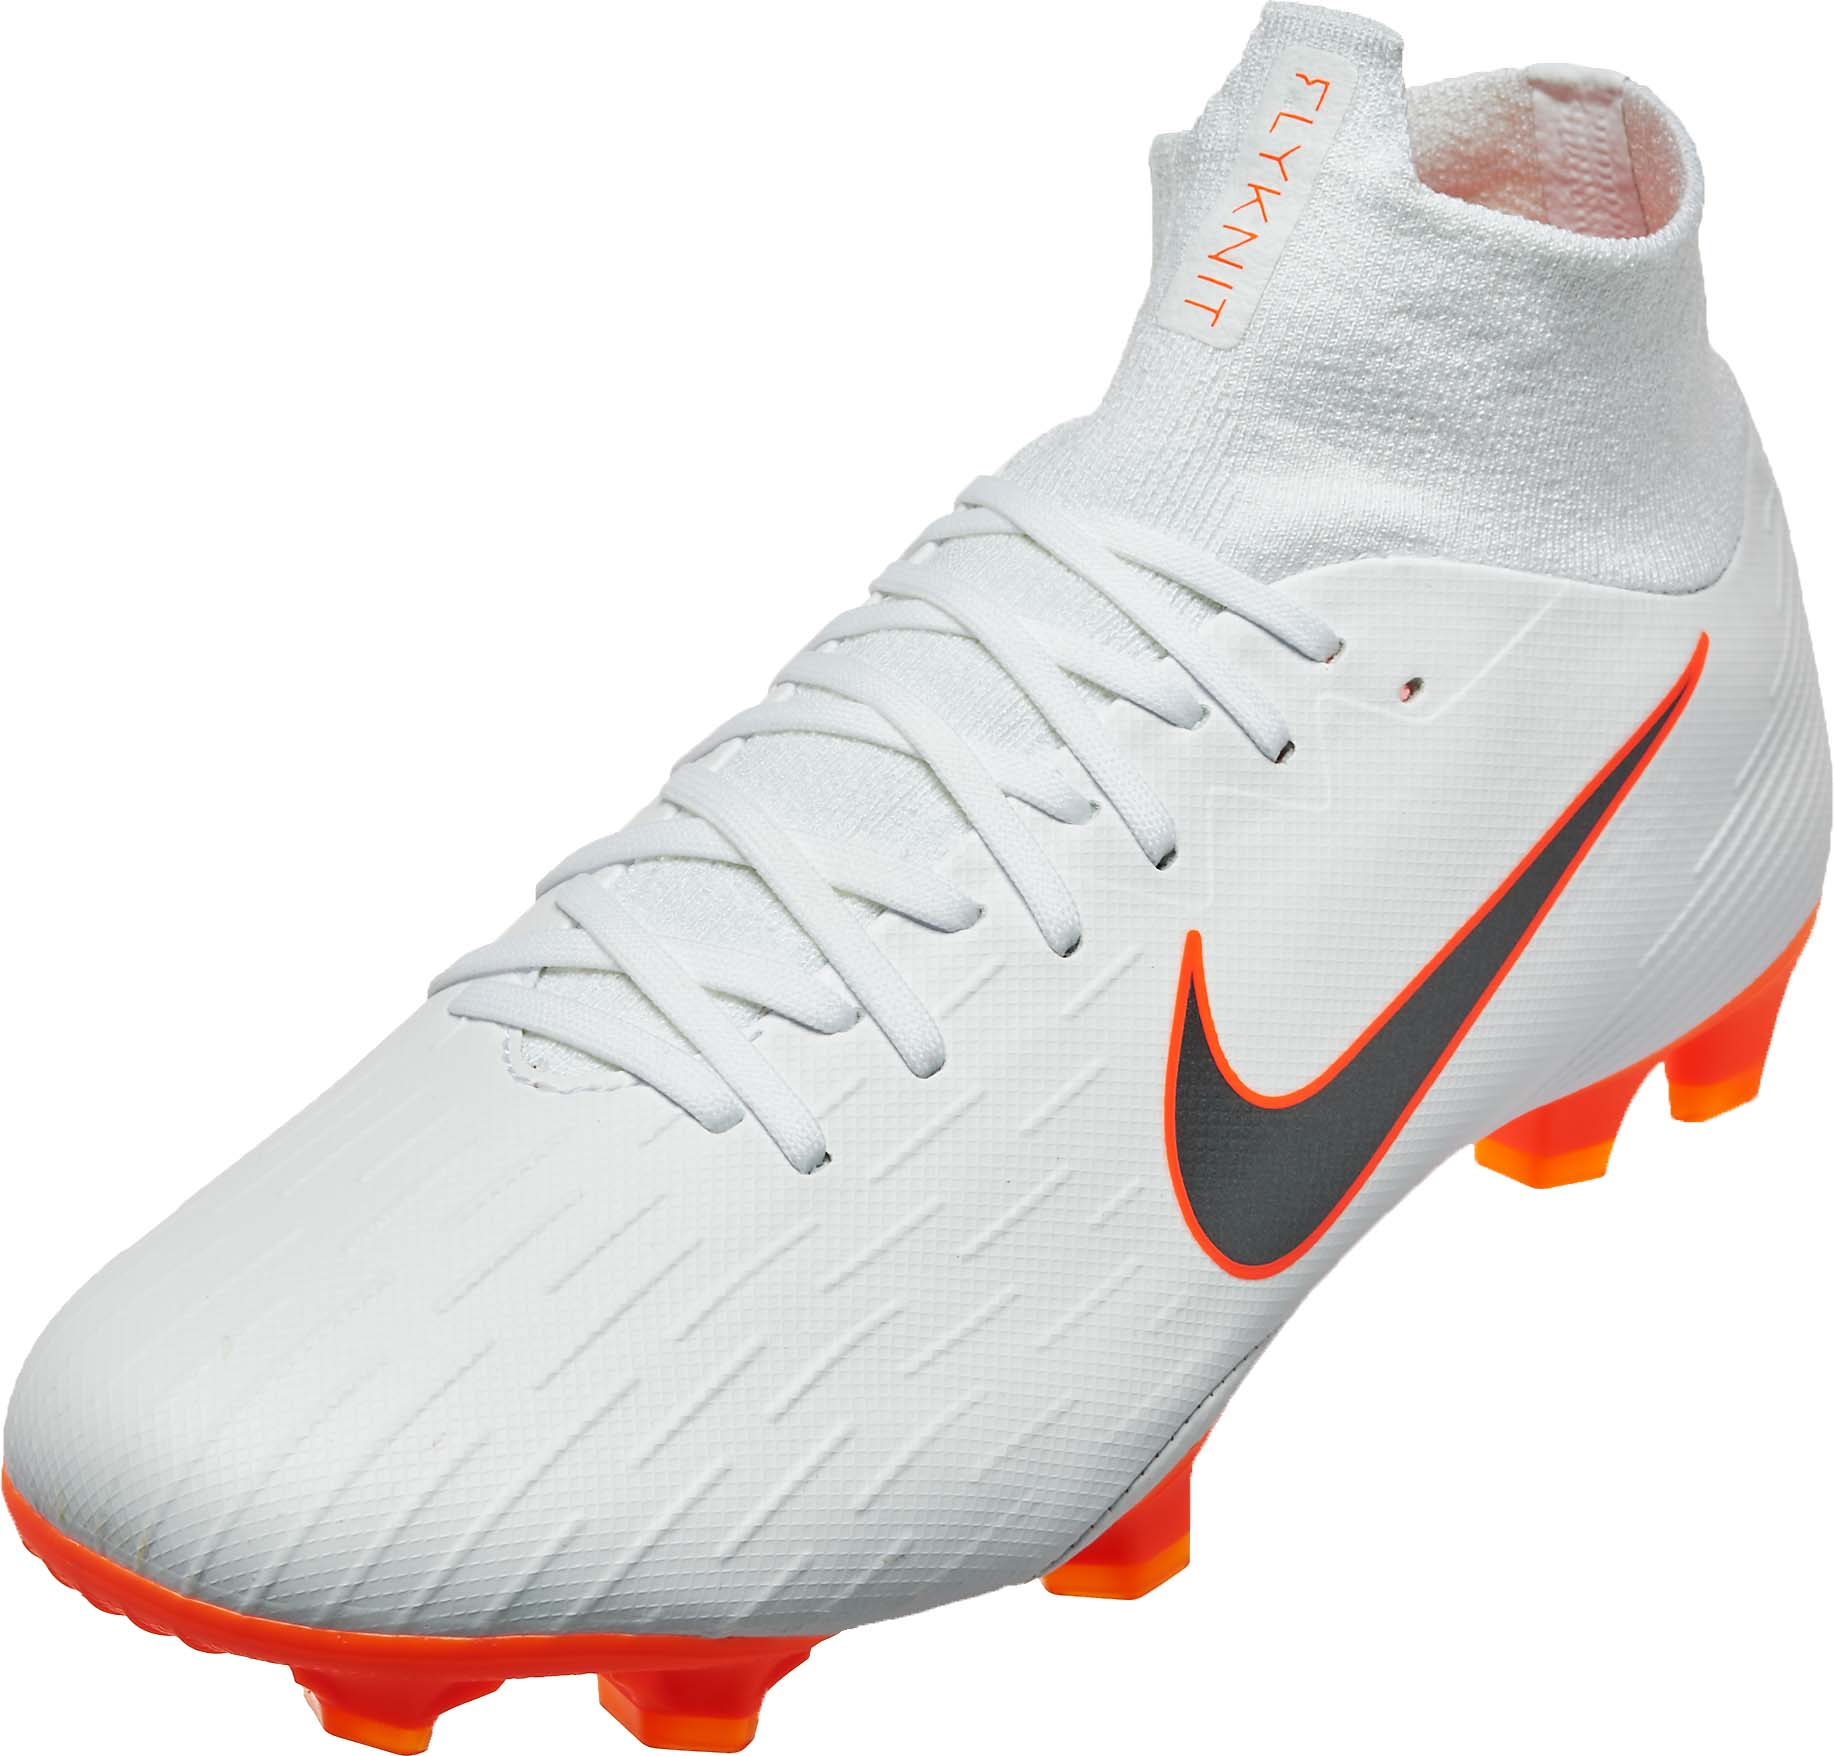 e16e5e8c55b8 Nike Mercurial Superfly 6 Pro FG – White Total Orange